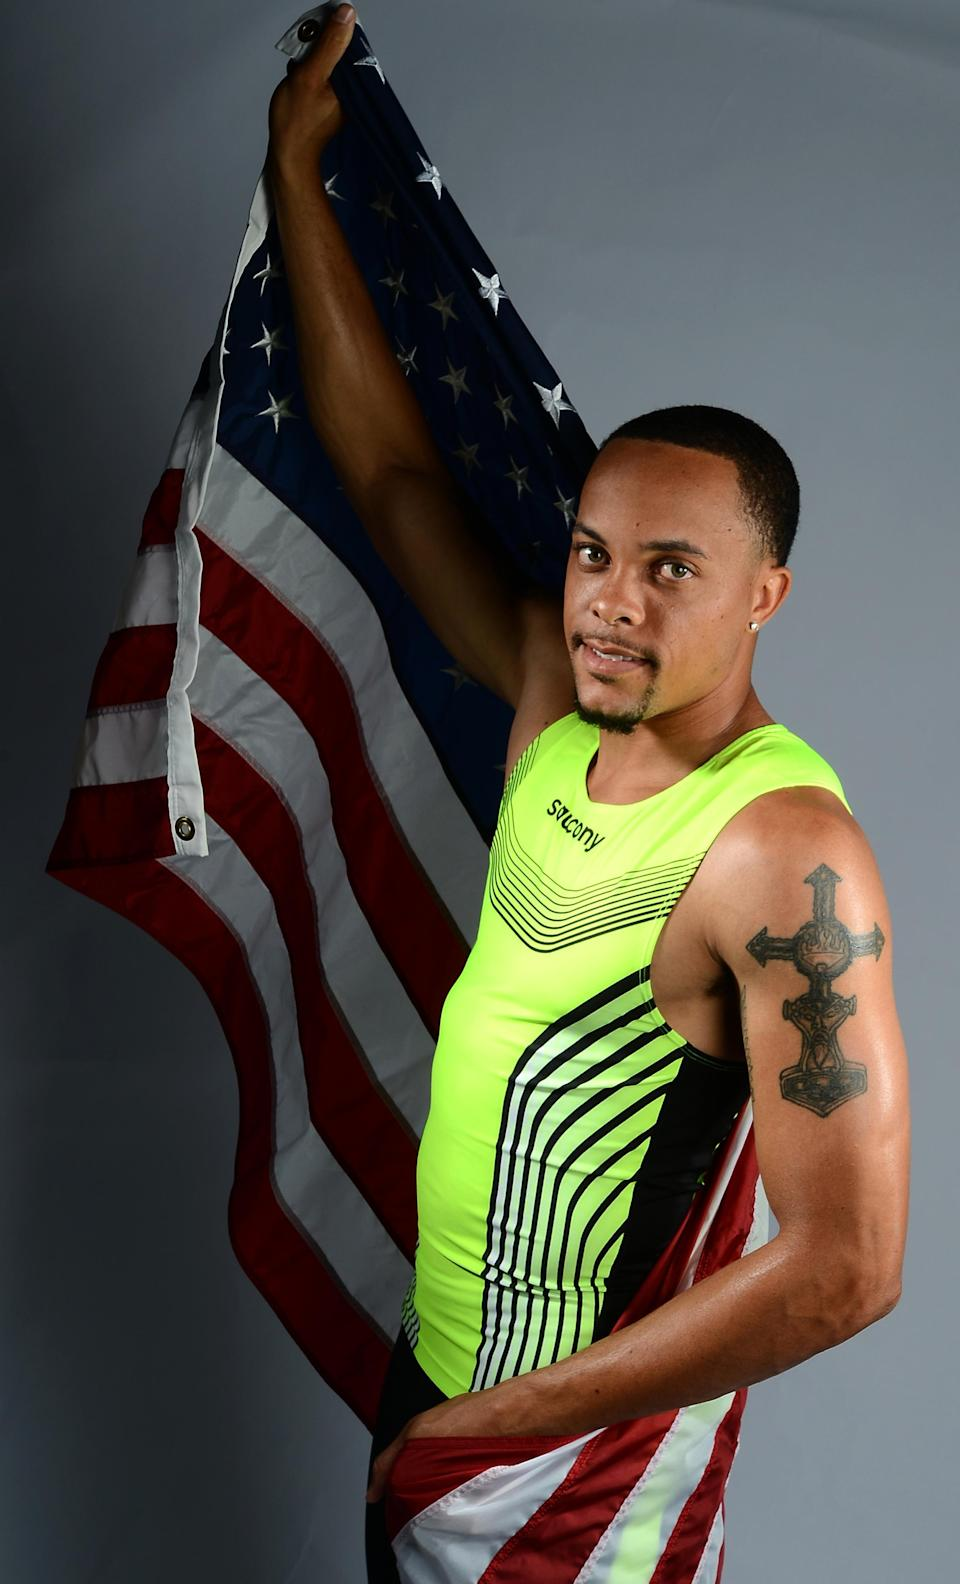 "Sprinter Wallace Spearmon of the US Track and Field Olympic team poses for pictures during the 2012 Team USA Media Summit on May 13, 2012 in Dallas,Texas. The detailed crucifix on his left bicep complements the ""Naturally gifted naturally"" tattoo on his right arm. JOE KLAMAR/AFP/GettyImages"